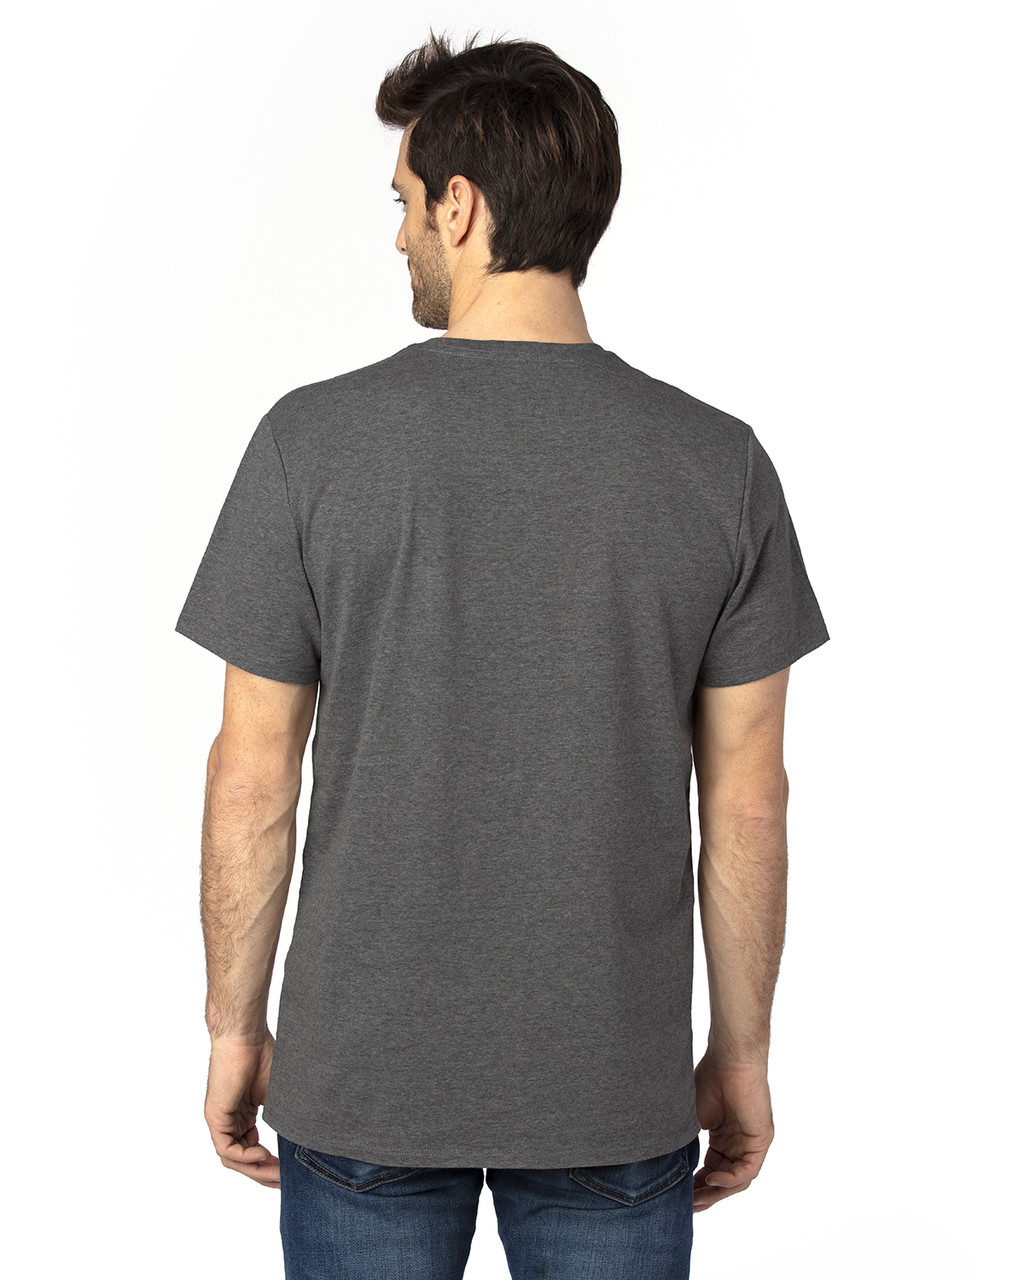 Charcoal Heather - Back, 100A Threadfast Unisex Ultimate Short-Sleeve T-Shirt | BlankClothing.ca